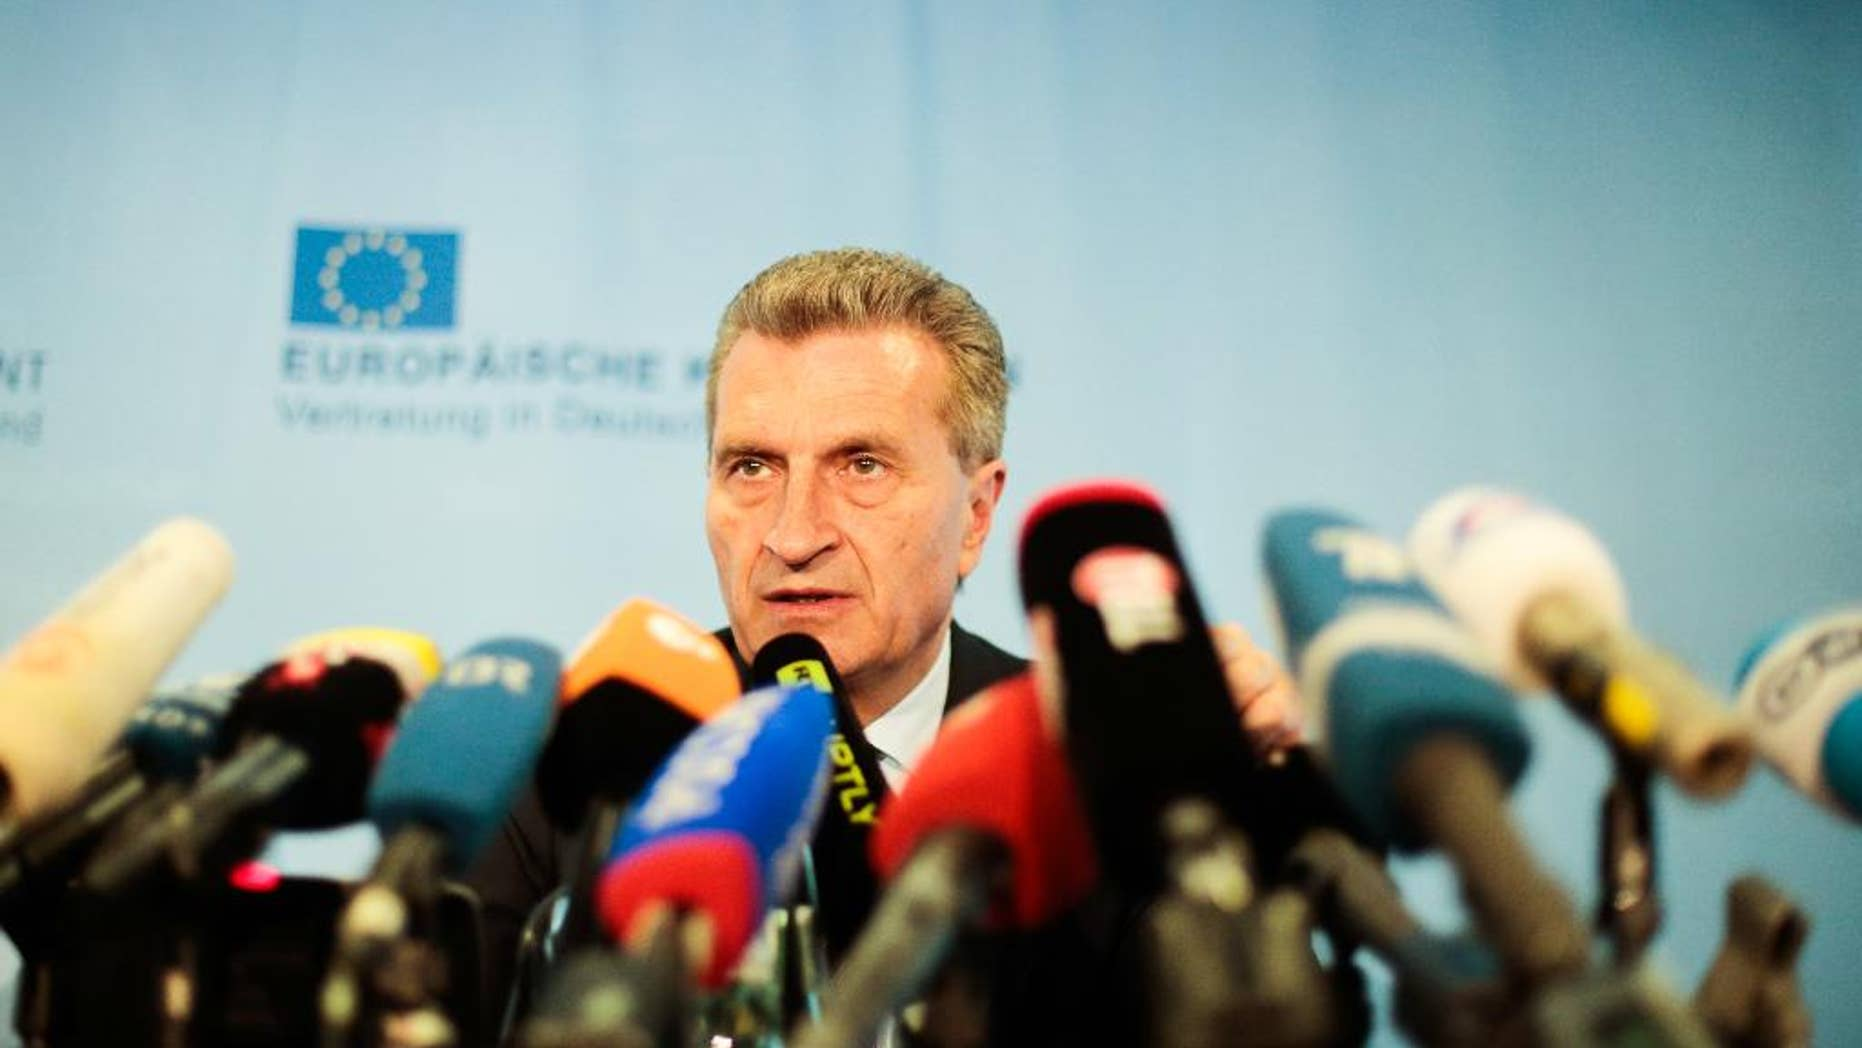 European Union energy commissioner Guenther Oettinger addresses a news conference as part of a meeting of the European Union, Russia's energy minister Alexander Novak and Ukraine's energy minister Yuri Prodan about Ukrainian future gas supply in Berlin, Friday, May 30, 2014. (AP Photo/Markus Schreiber)